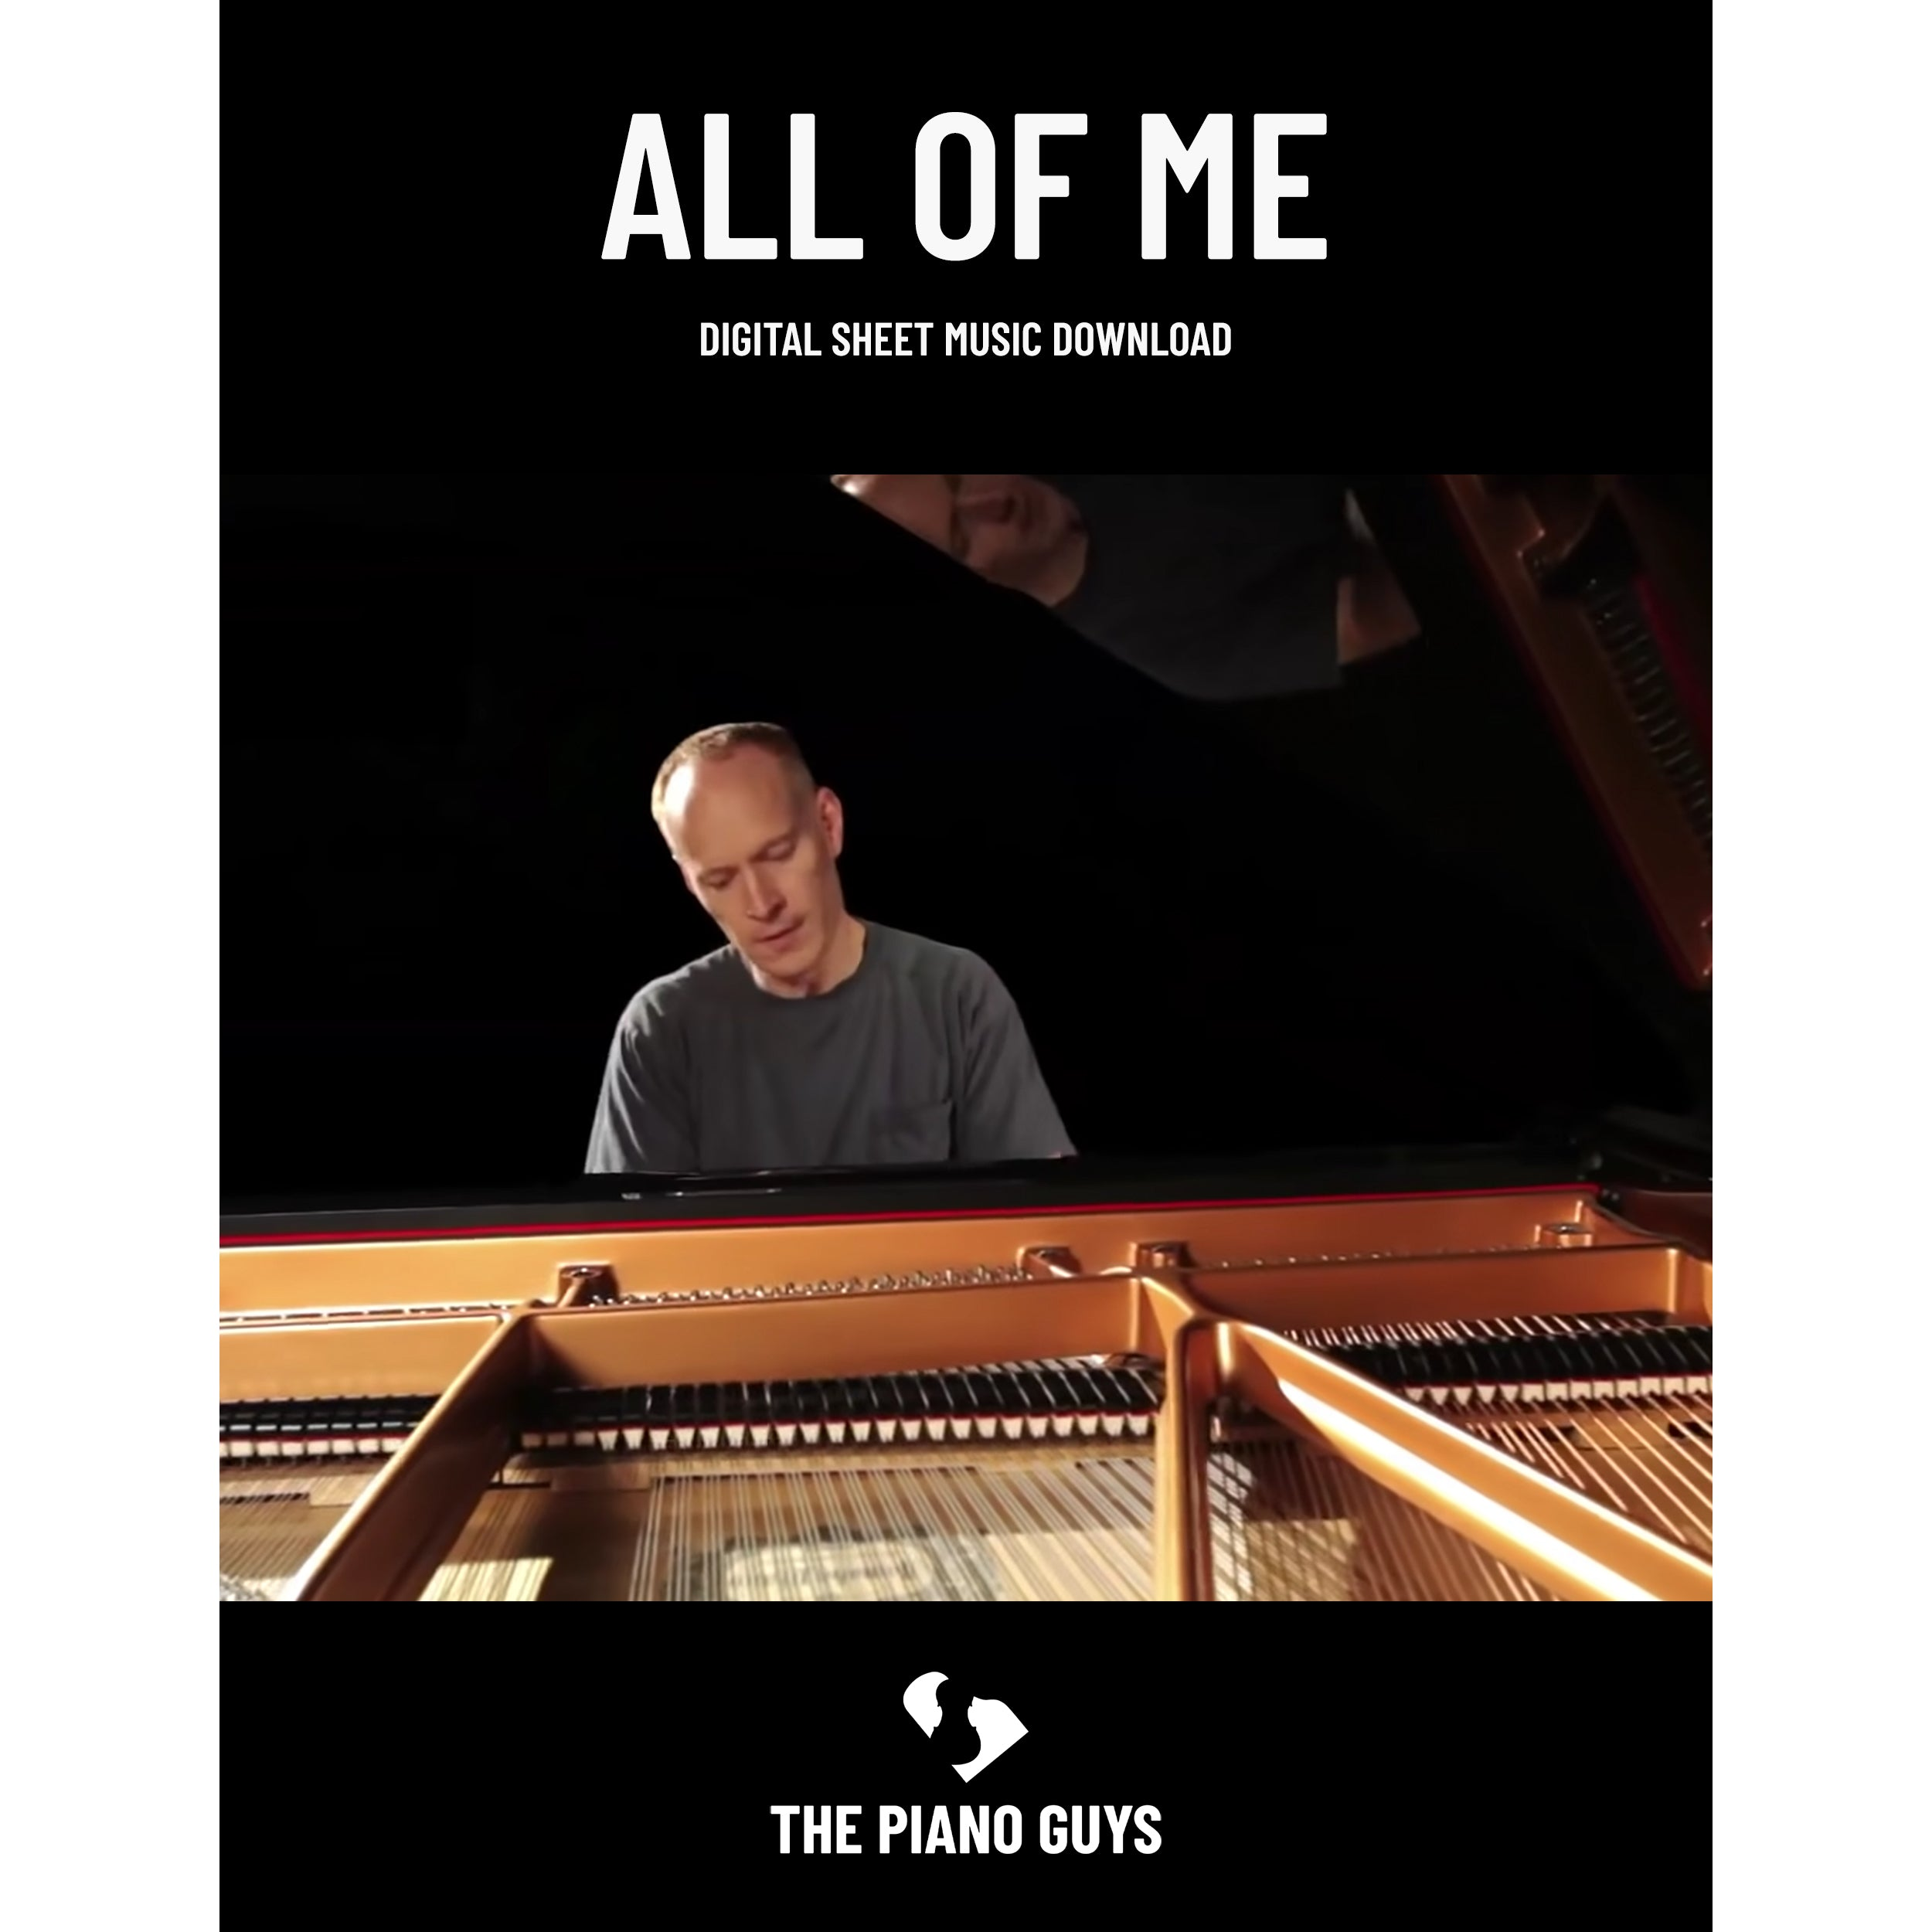 All Of Me Piano Sheet Music all of me sheet music digital download (pdf) – the piano guys